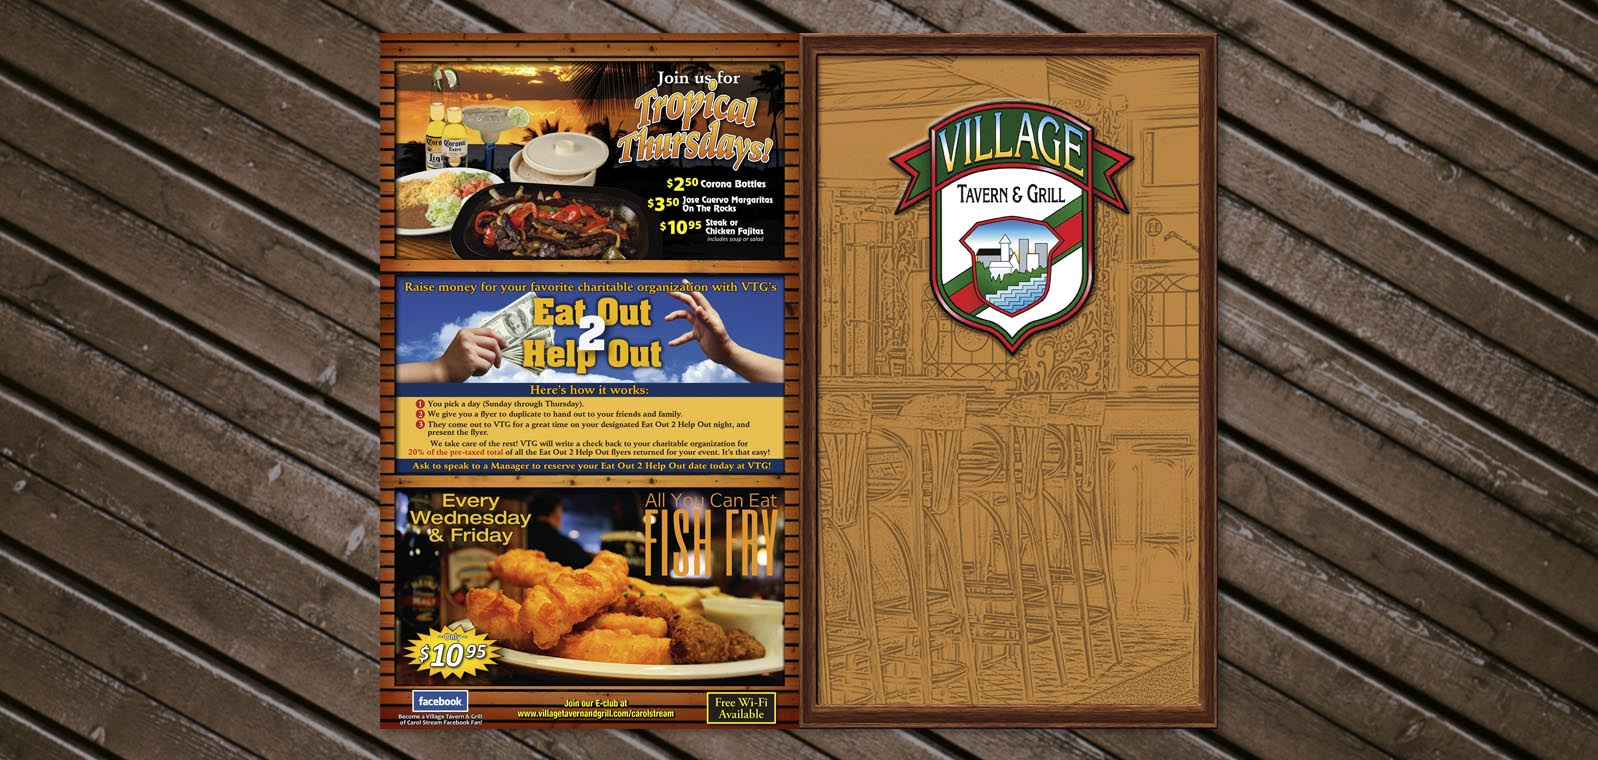 Dine In Menu Cover Graphic Design from Roselle Graphic Designer Controlled Color, Inc.